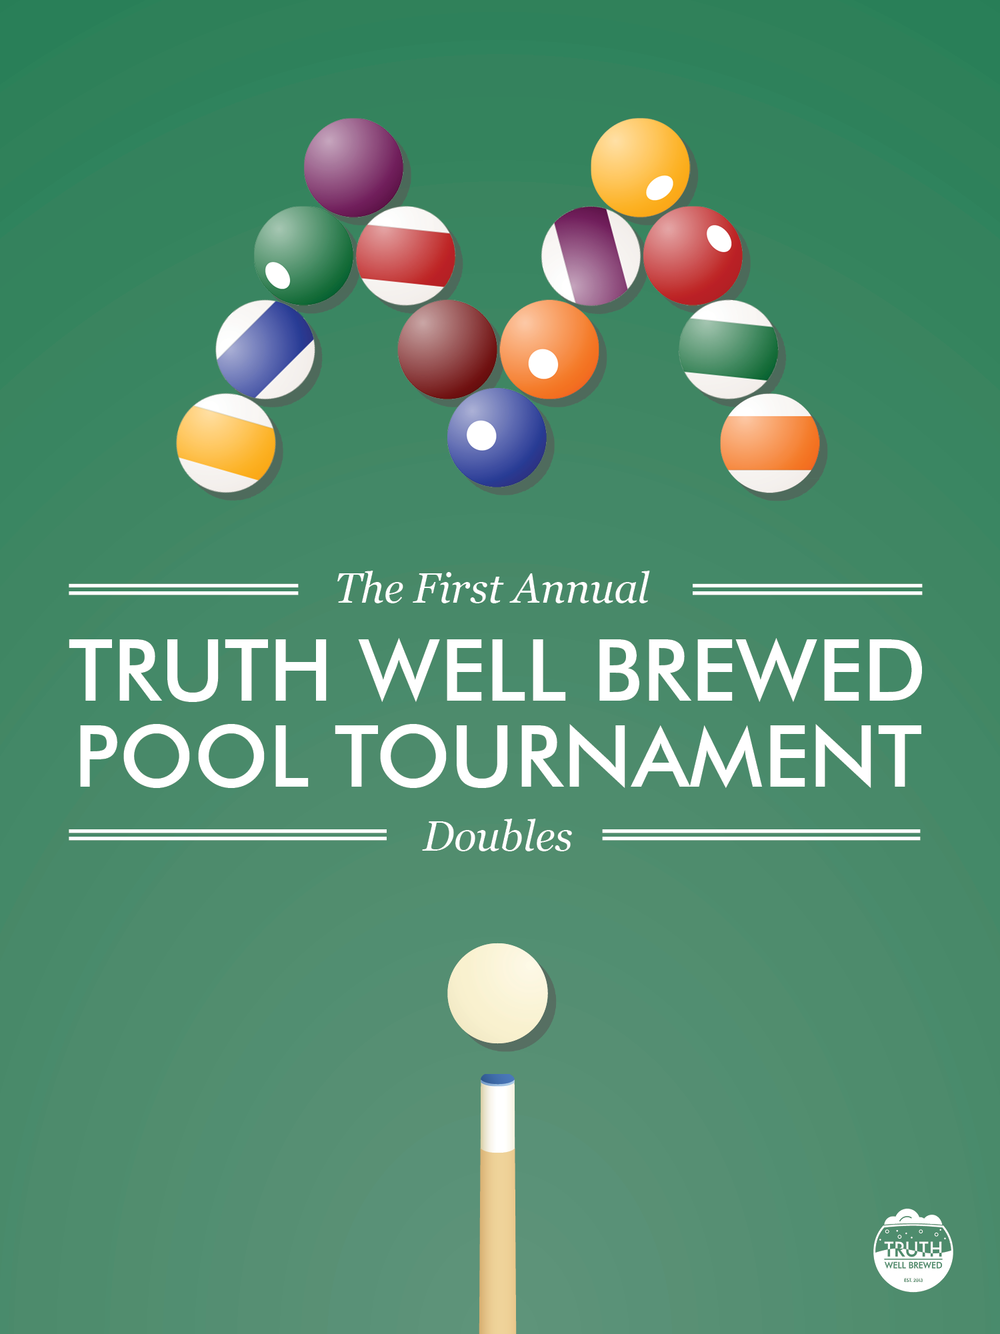 TWB Pool Tournament Poster.png